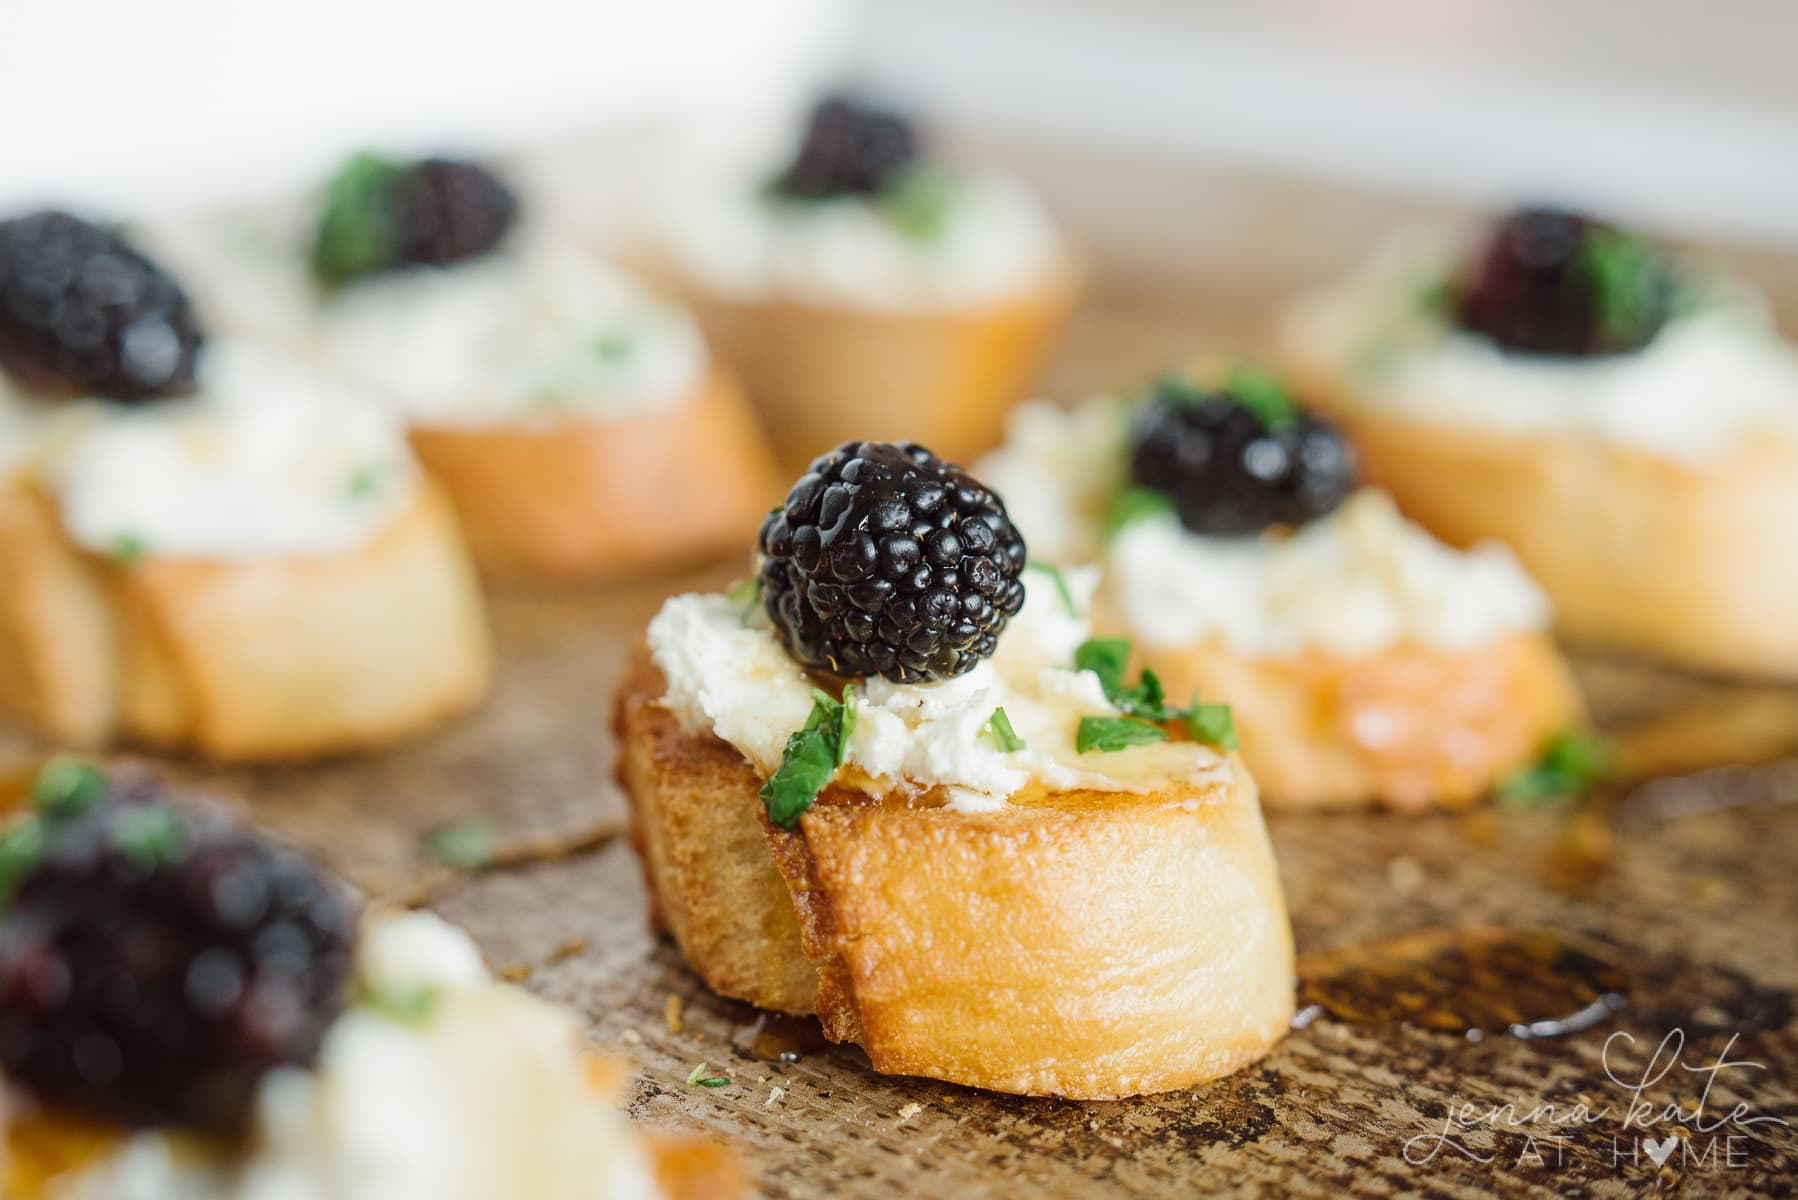 Crostini with fresh blackberries, basil and whipped goat cheese